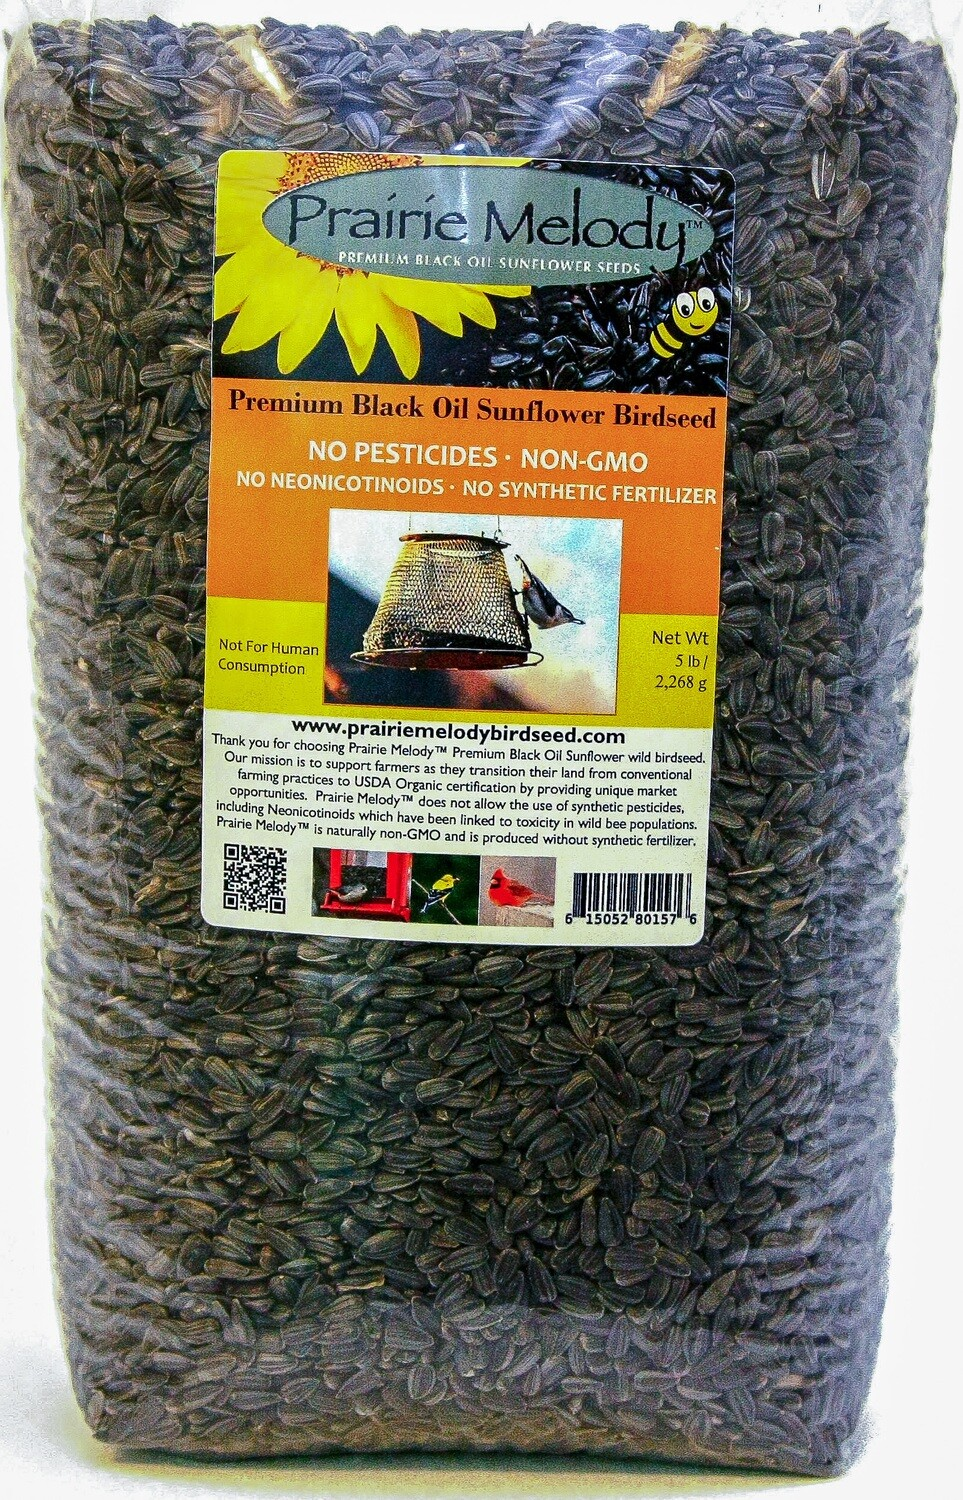 Pesticide Free - Black Oil Sunflower Birdseed - 5 lb Clear Bag